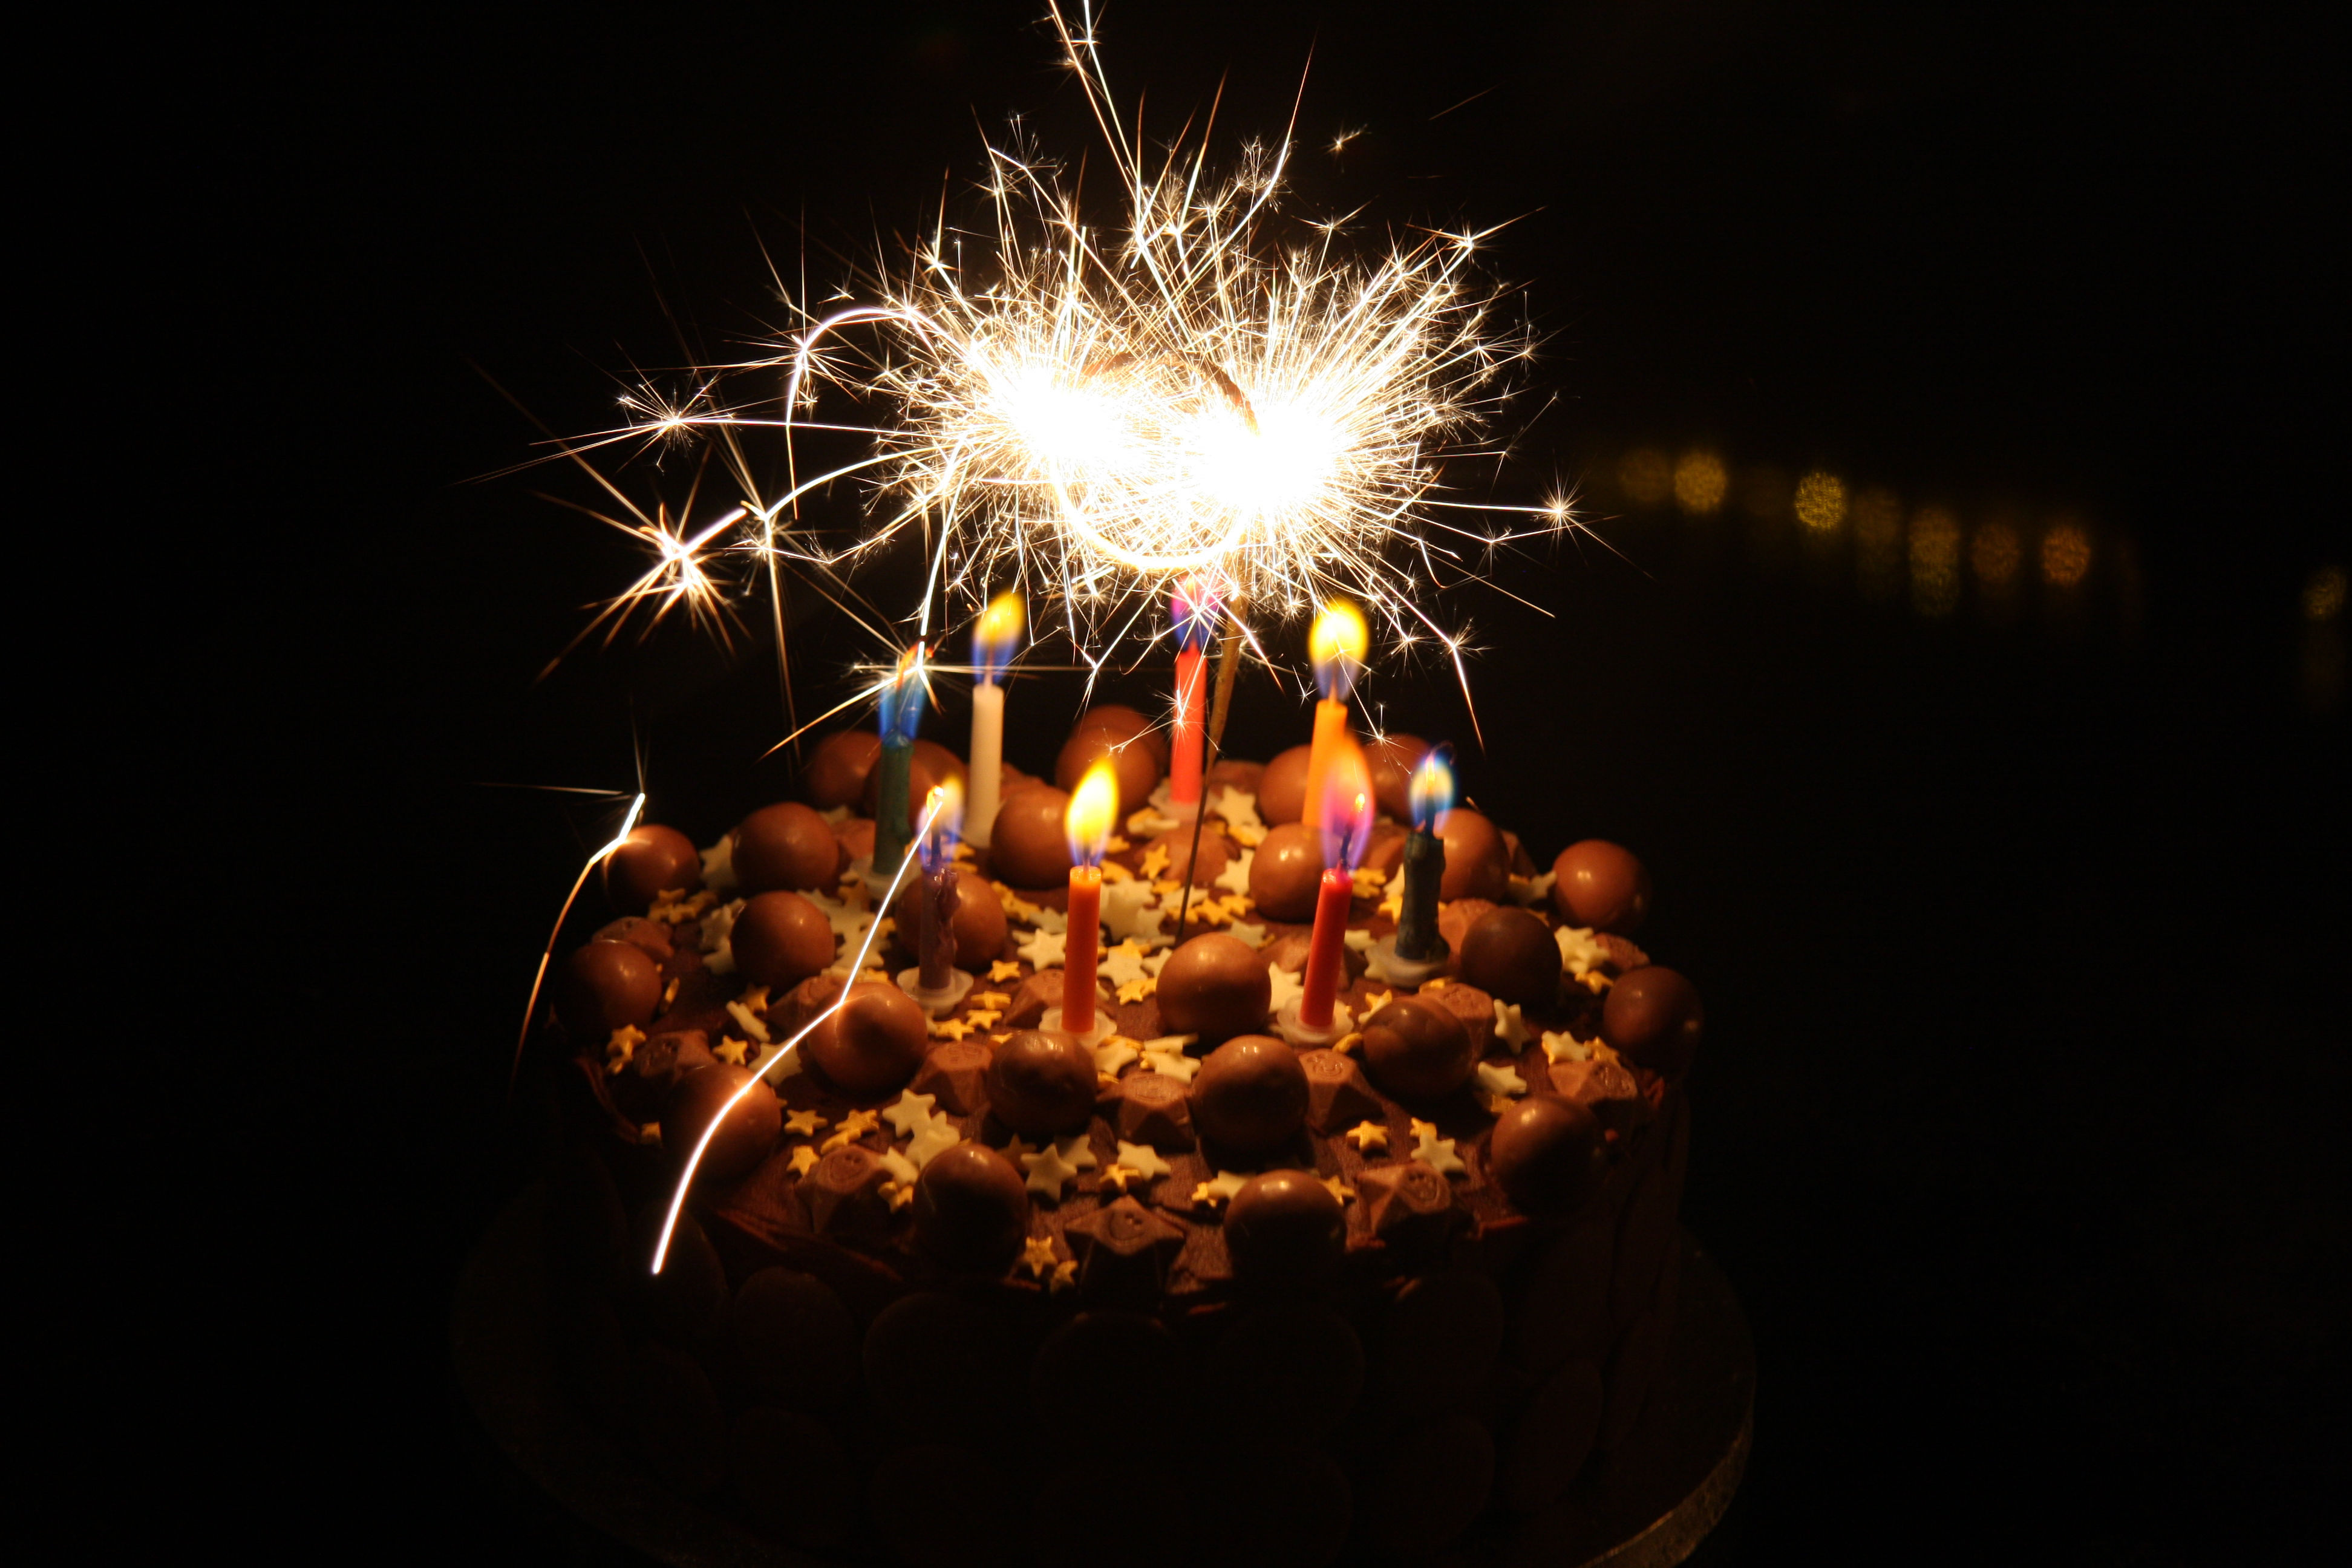 Birthday Cakes With Candles Free Birthday Cake With Candles Download Free Clip Art Free Clip